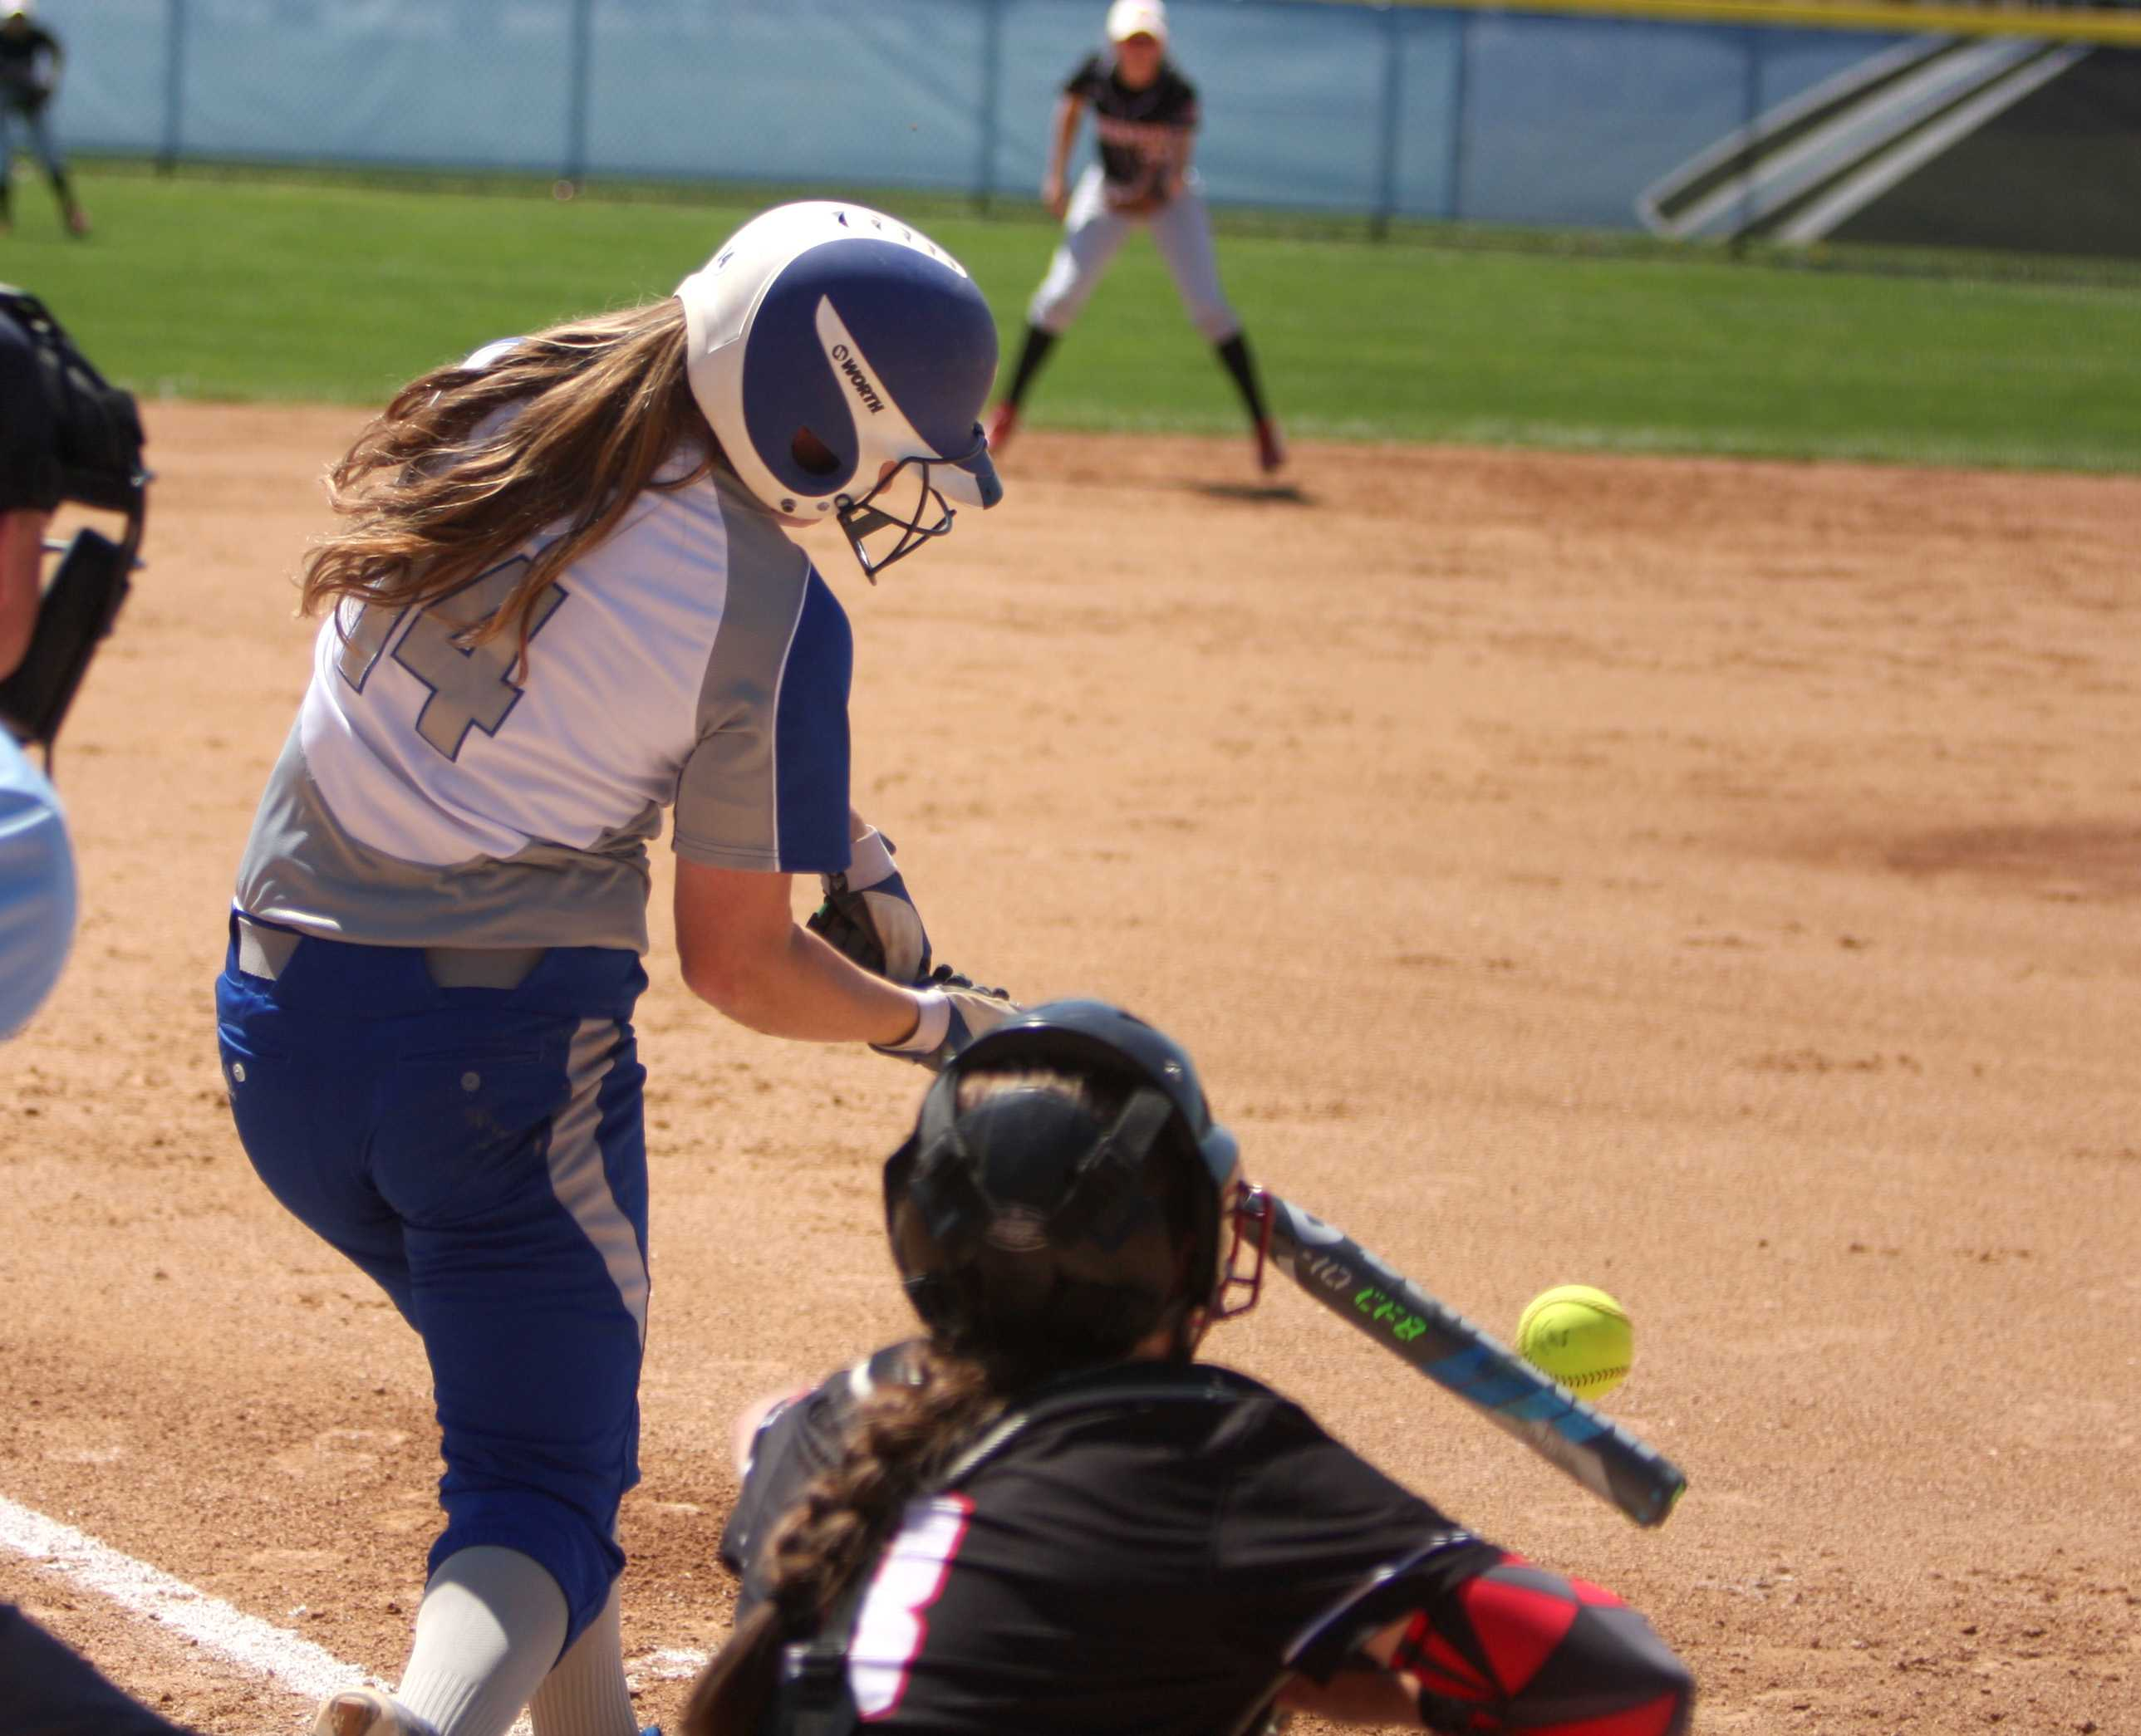 Sophomore Mady Poulter connects with the ball in a game last spring at Williams Field. Poulter hit a 3-run home run in the Panthers win against Savannah State this weekend.